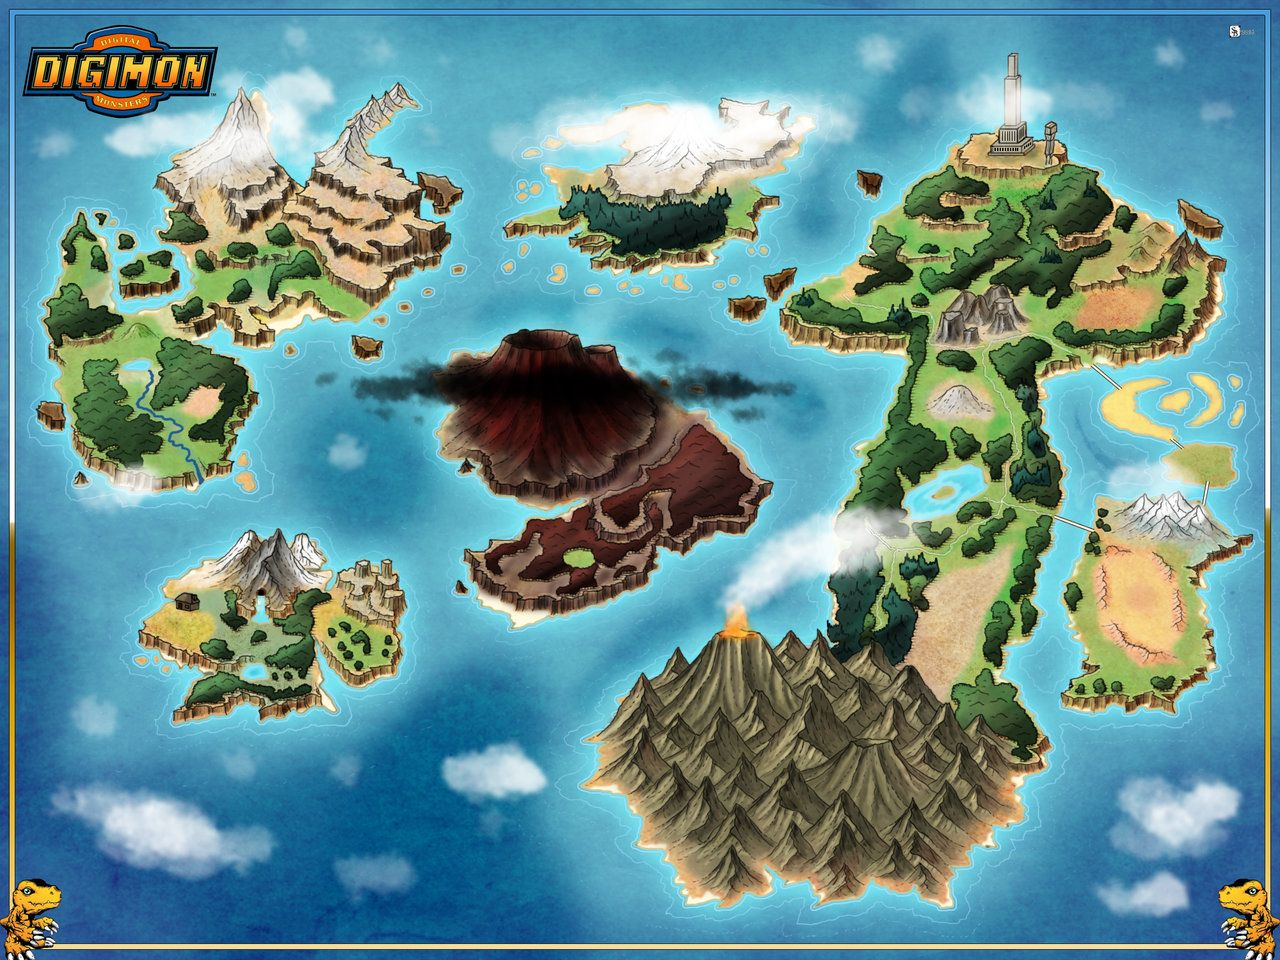 Digimon world map commission by stratomunchkin rpg fantasia digimon world map commission by stratomunchkin gumiabroncs Image collections